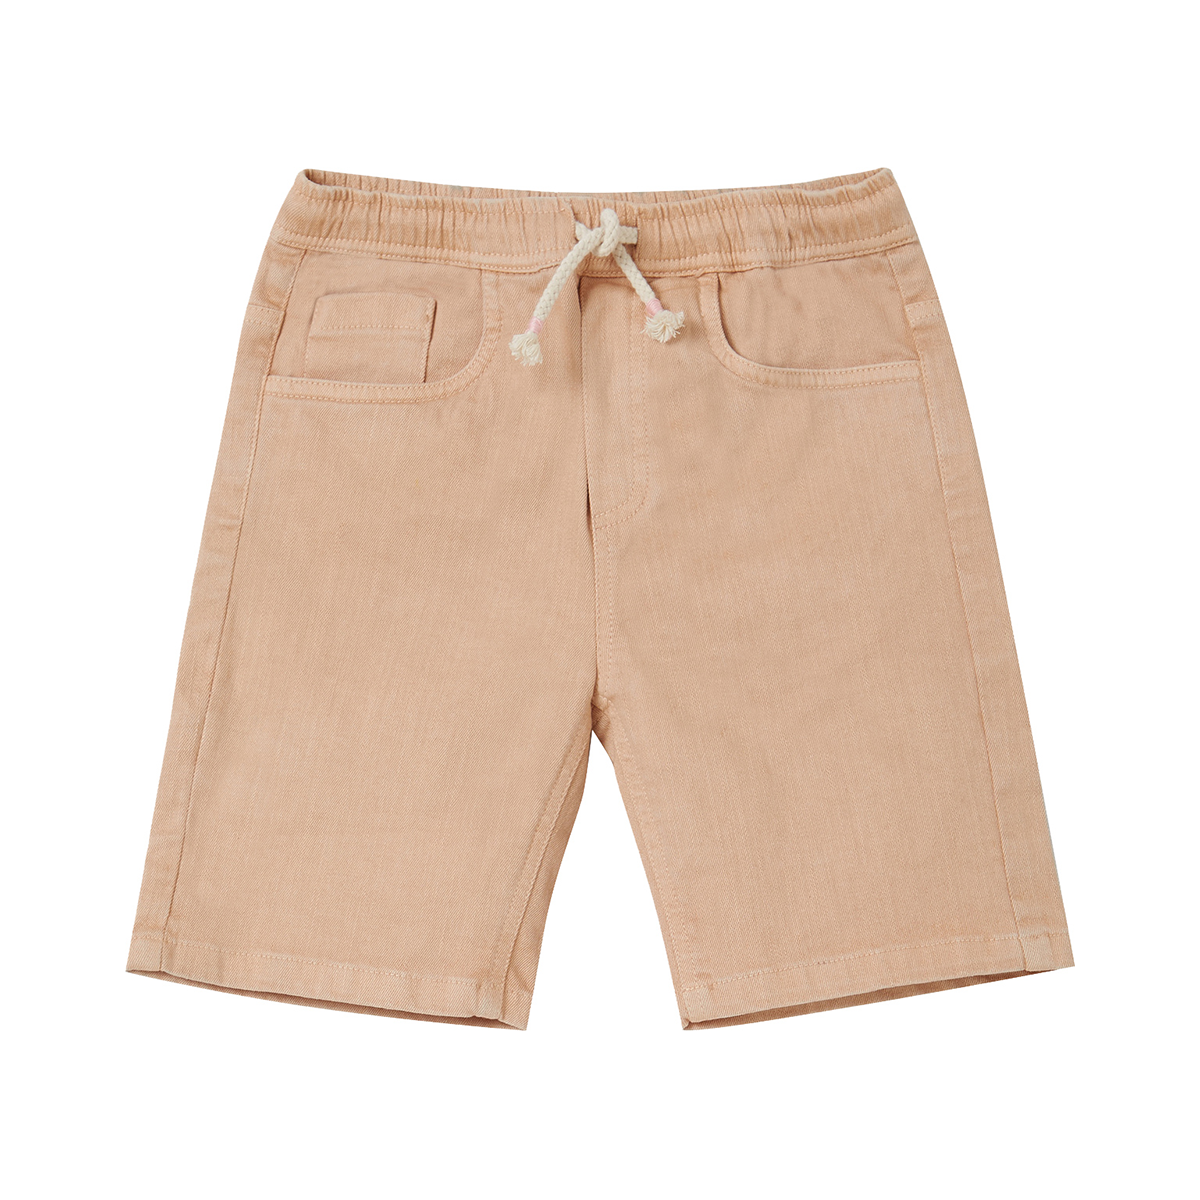 Art & Eden Organic Cotton Cole Shorts - Khaki